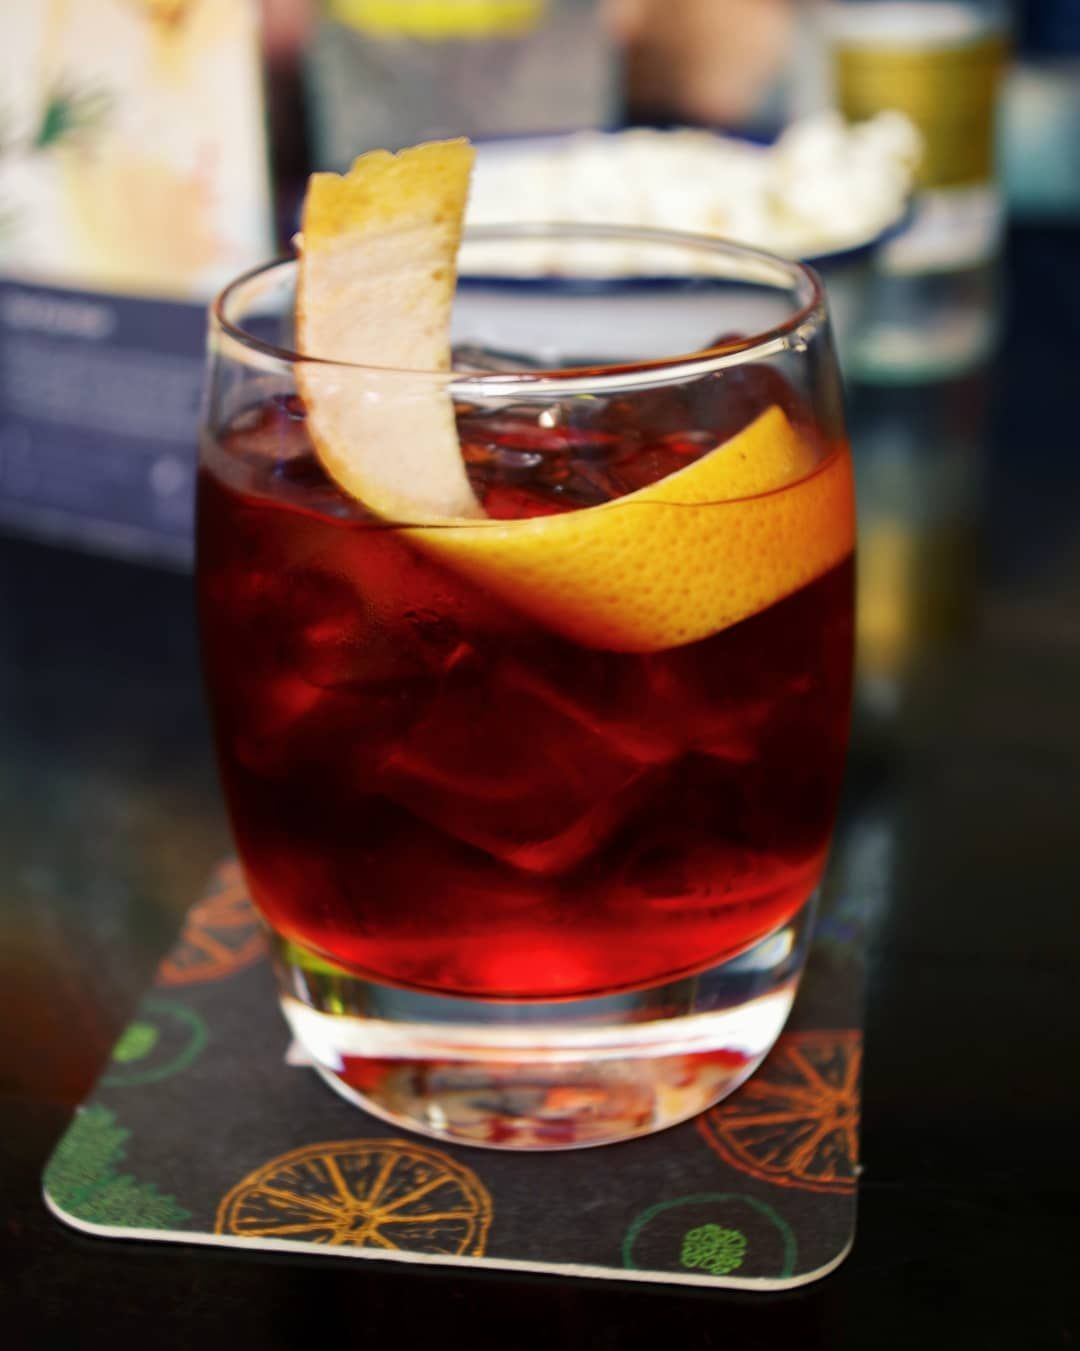 Inka Larissa On Instagram I Ve Posted This One Sometime Ago But Feel Negroniweek Is The Perfect Time To Share This Weird And Wonderful Negroni Variat Negroni